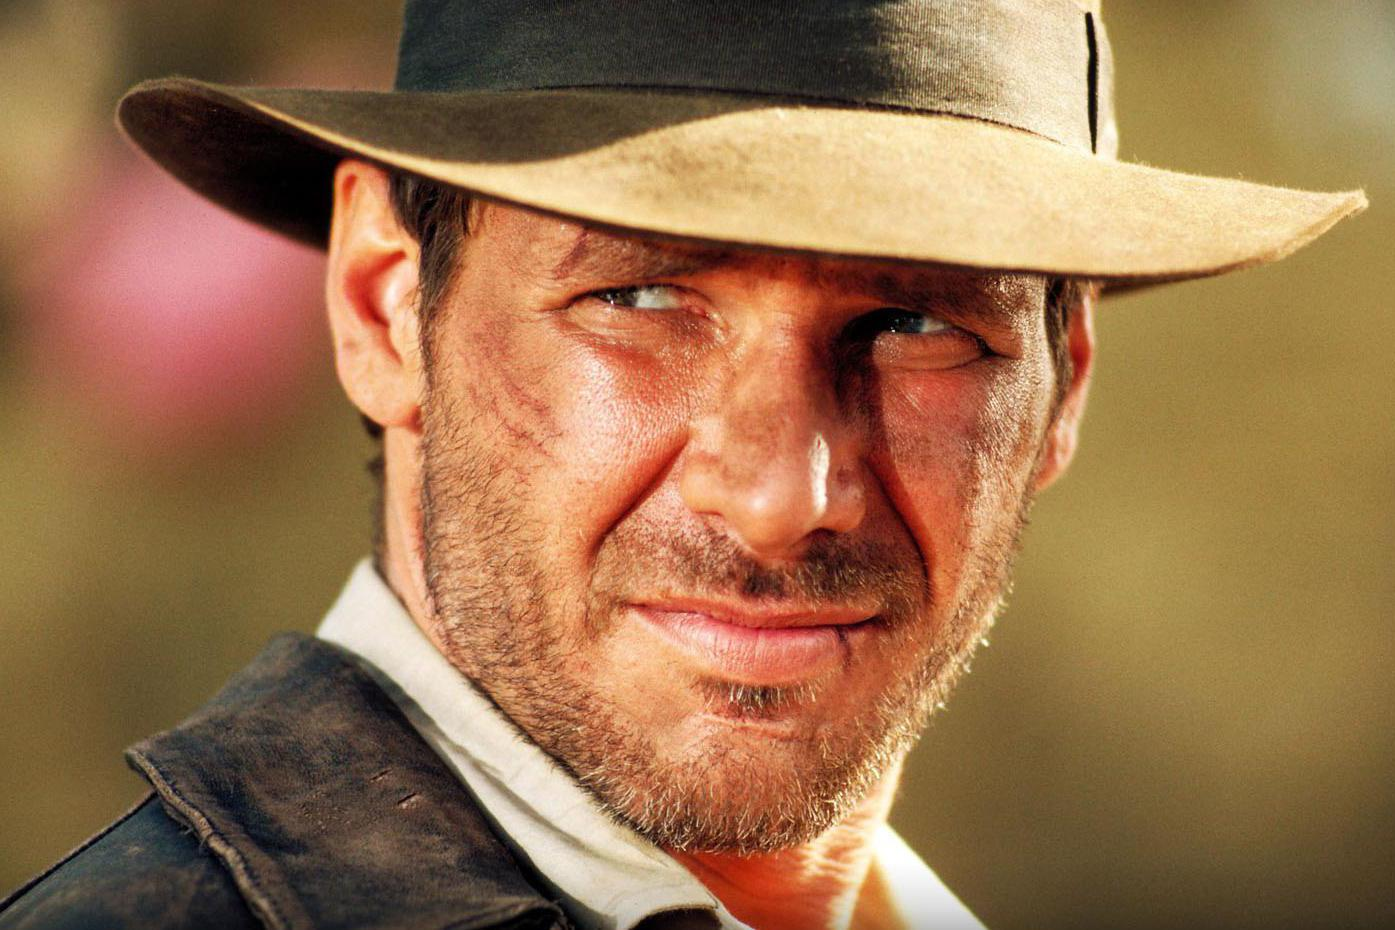 indiana jones Released in 2008 as part of the general licensing push built around the year's new indy movie, this mass-market game invites players to recreate indy's previous quests.